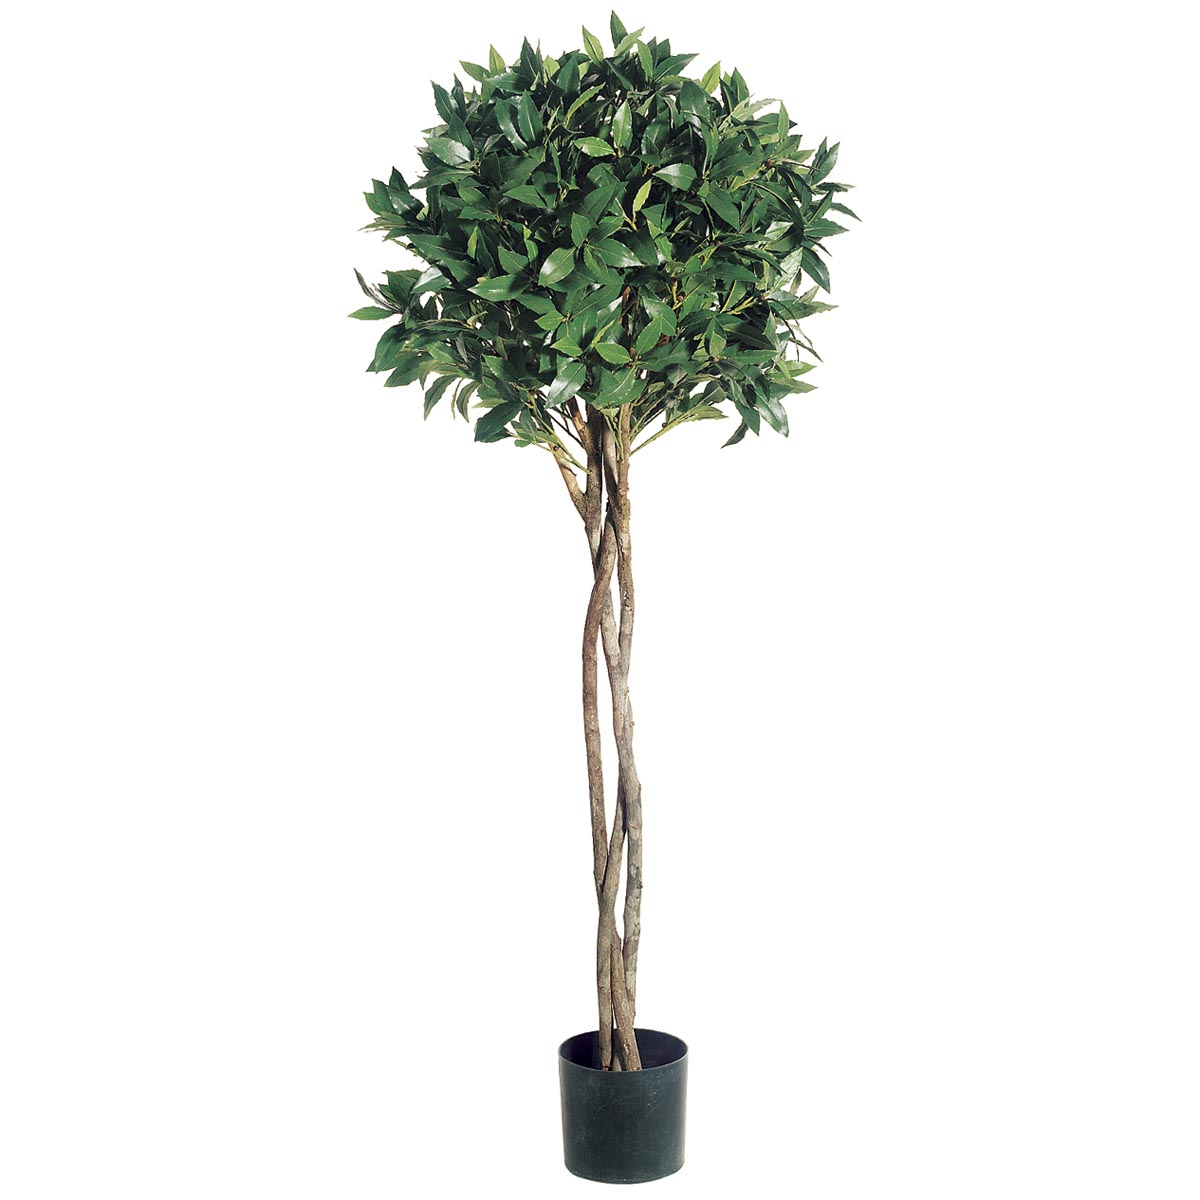 4 Foot Bay Leaf Topiary With Braided Trunk: Limited Uv (set Of 2)